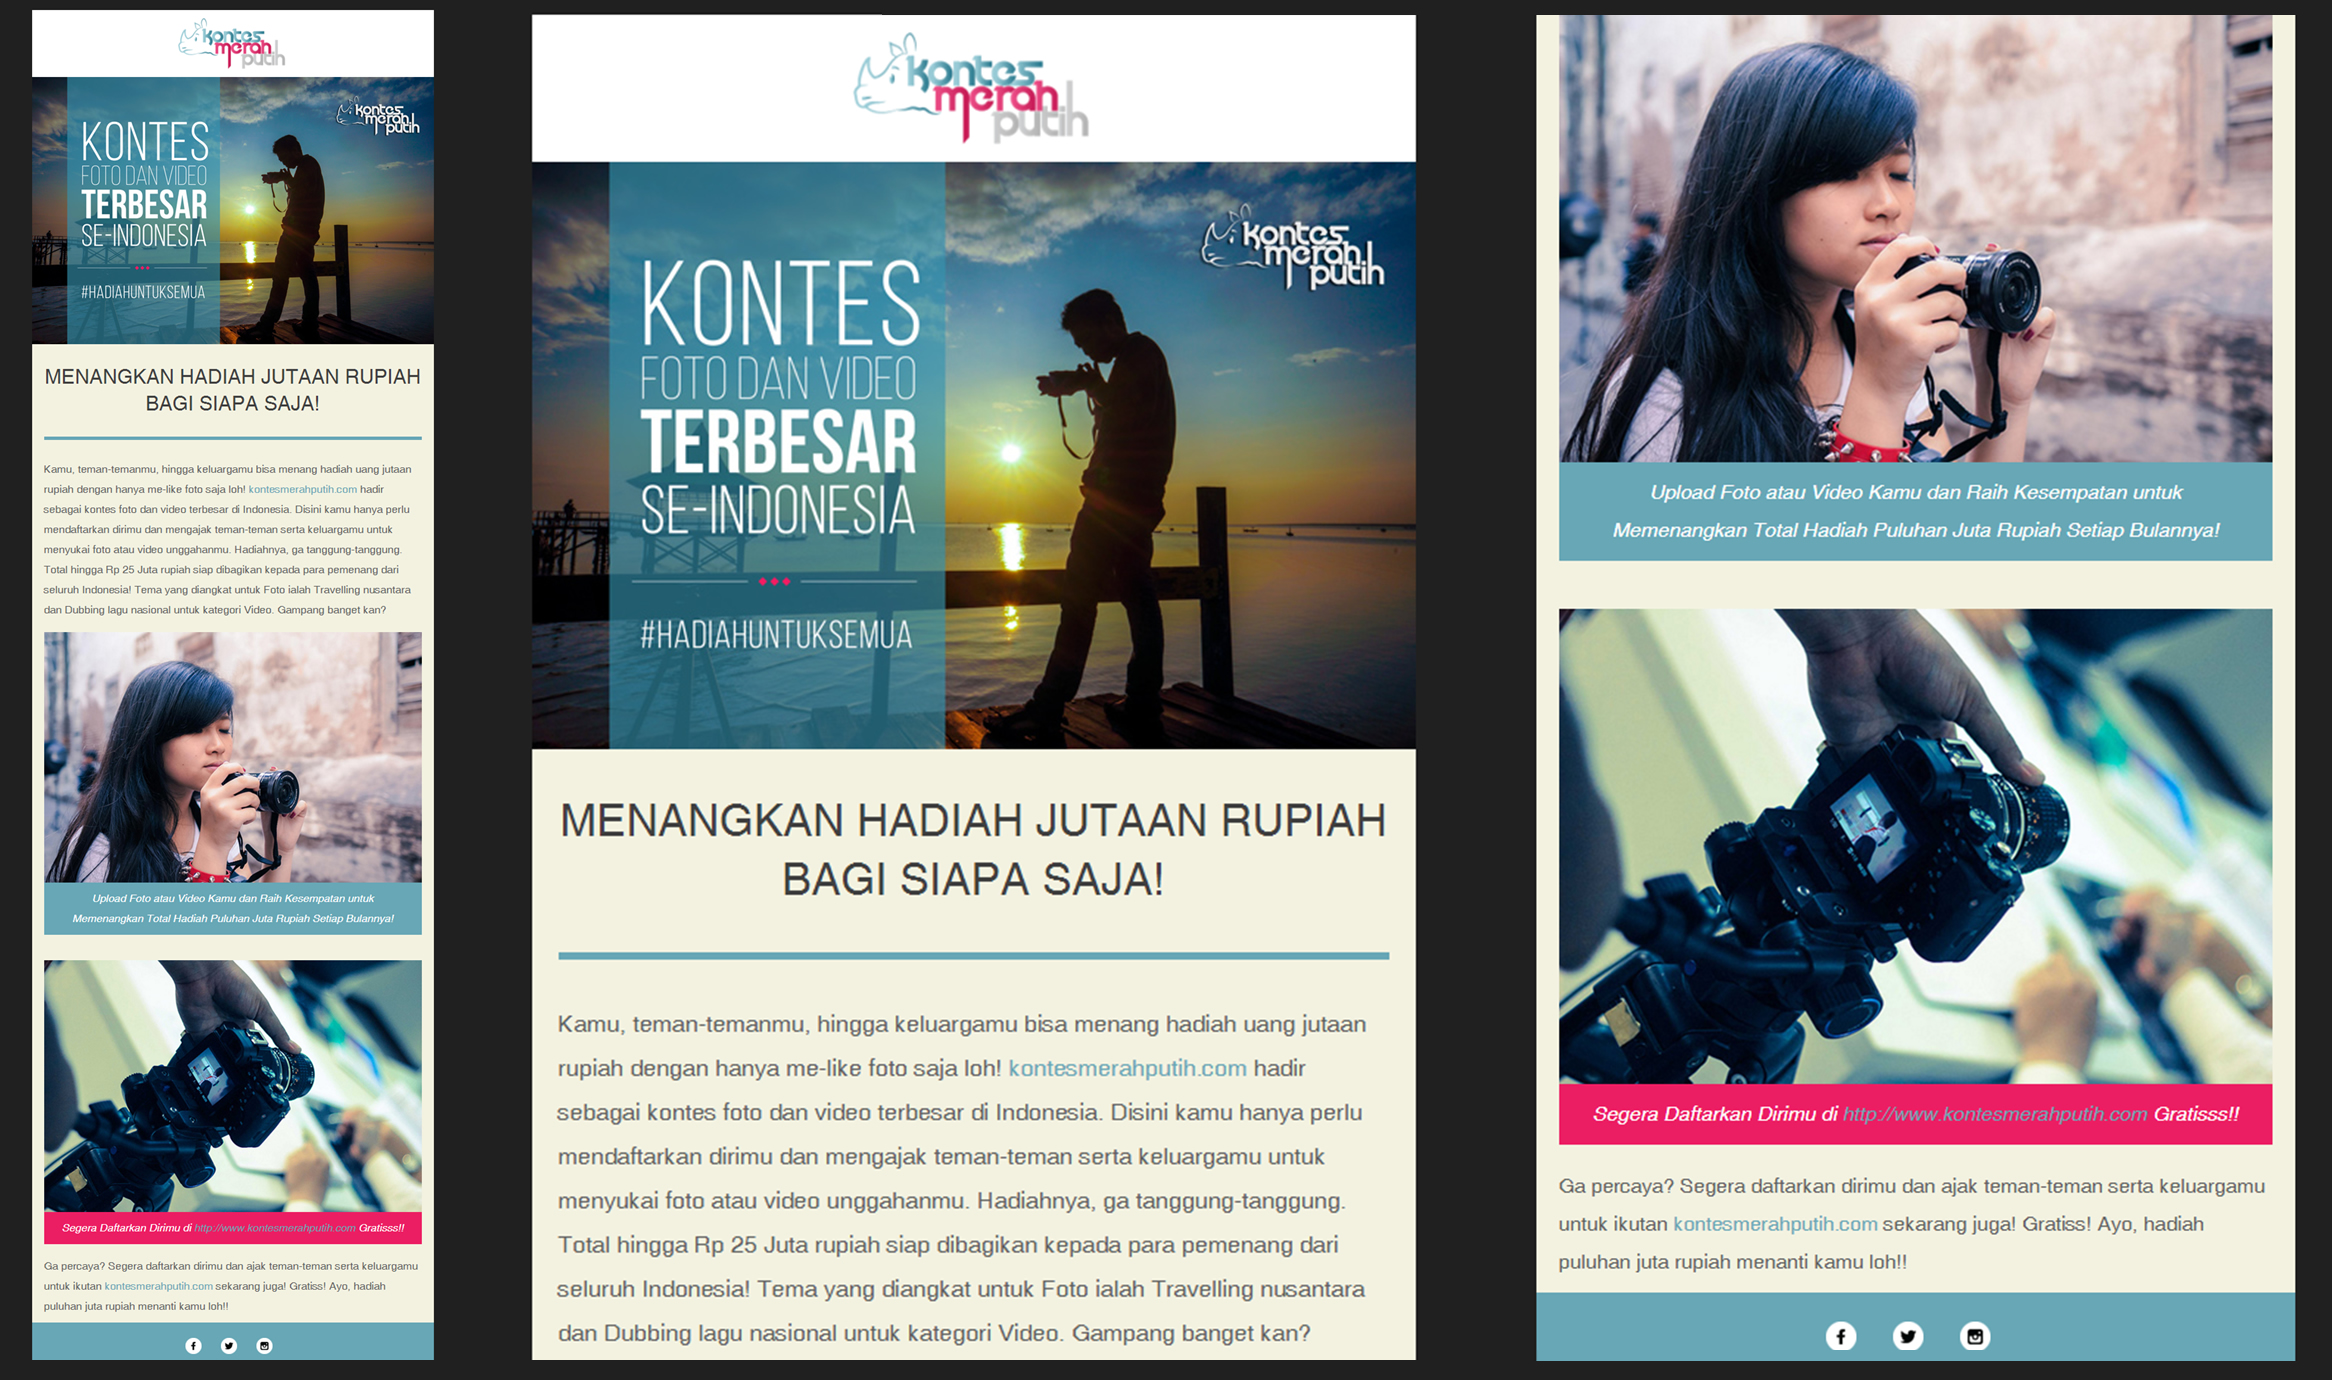 Email-Marketing-Kontes-Merah-Putih-oleh-Arfadia